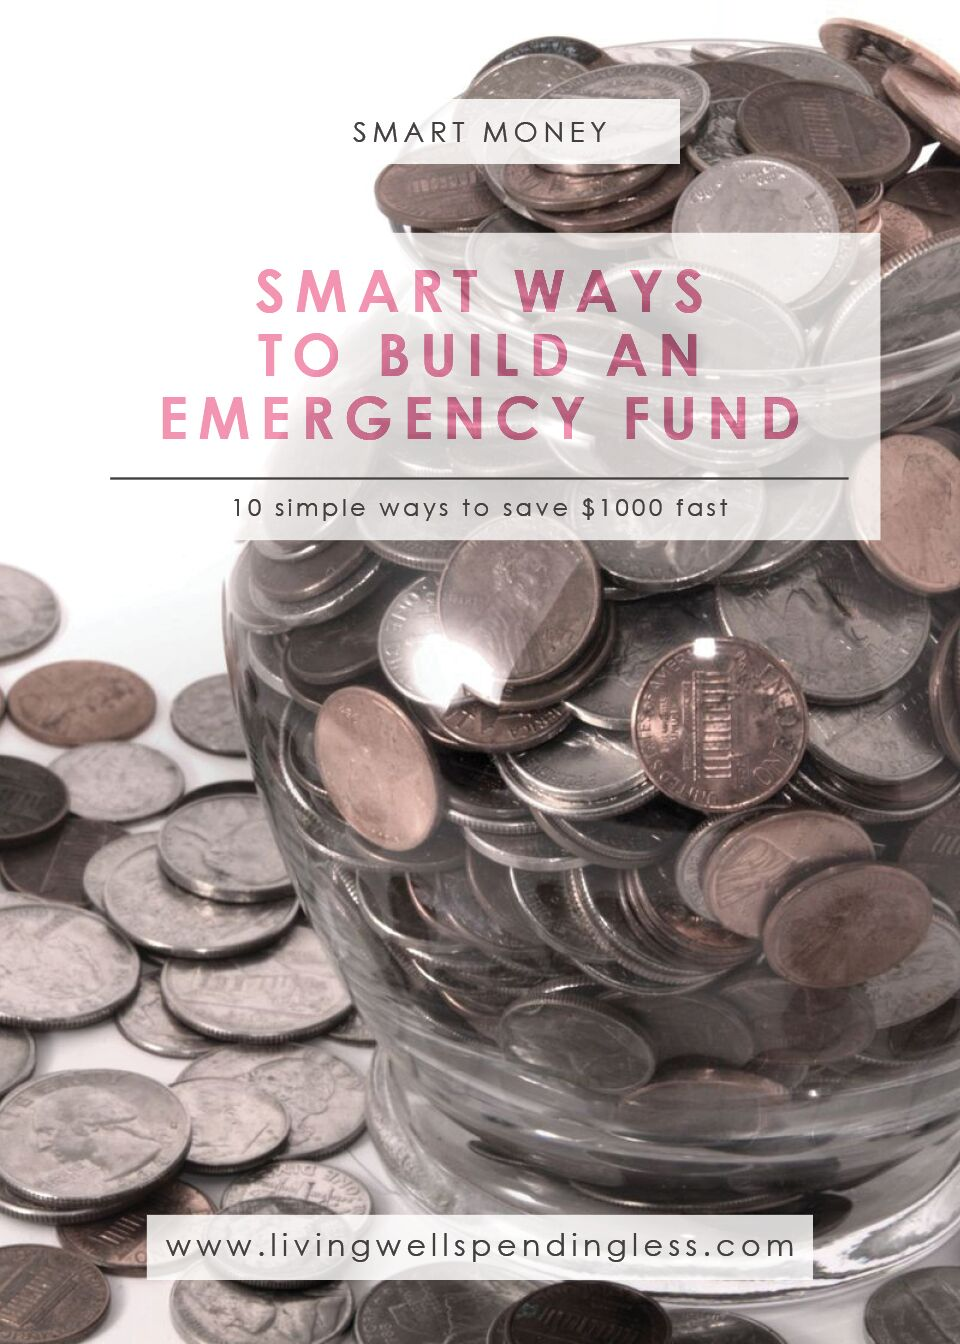 10 Smart Ways to Build an Emergency Fund | Grow An Emergency Fund | Emergency Fund | Saving Tips | Money Saving Tips | Budgeting | Financial Management | Budgeting | Money Advice | How To Save | Build an Emergency Fund | Pay Off Debt